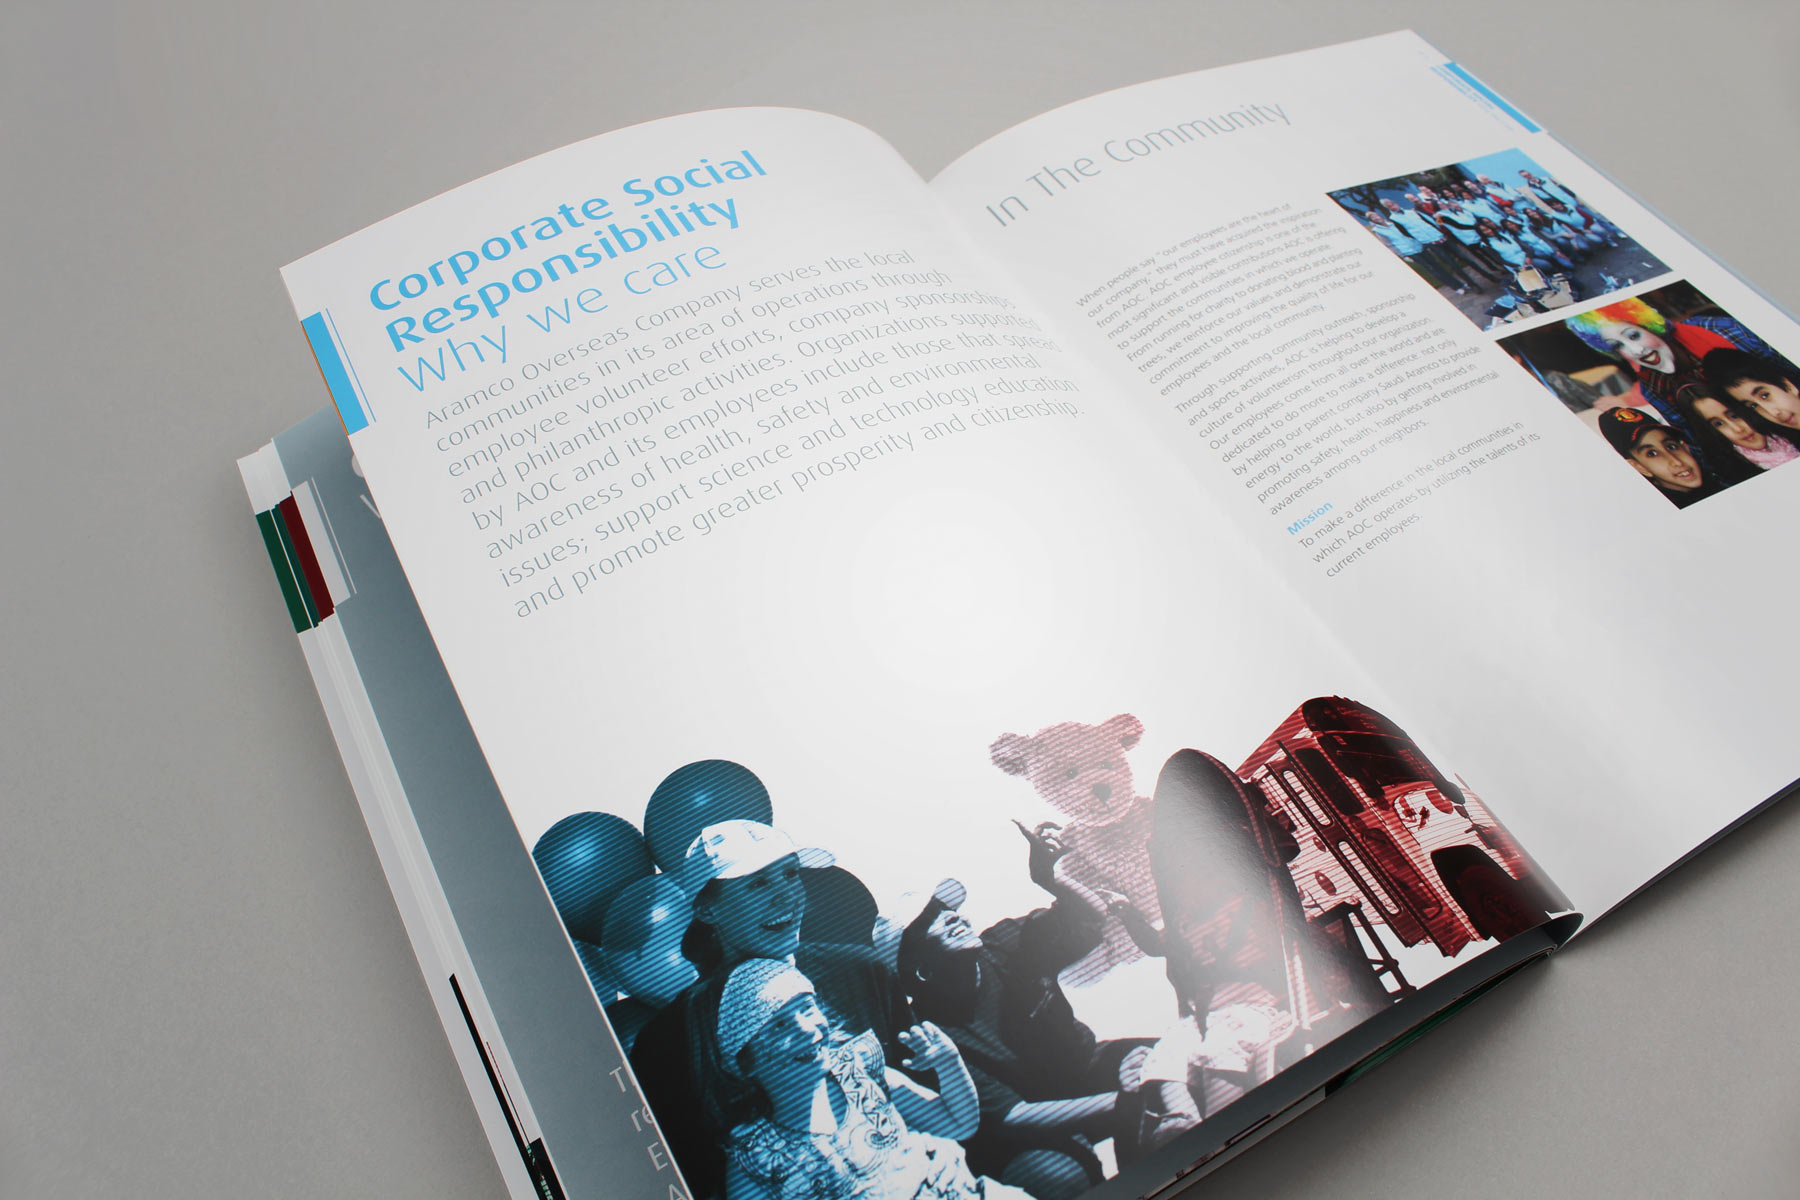 The clean layouts contain both the industrial and human sides to the corporate message.